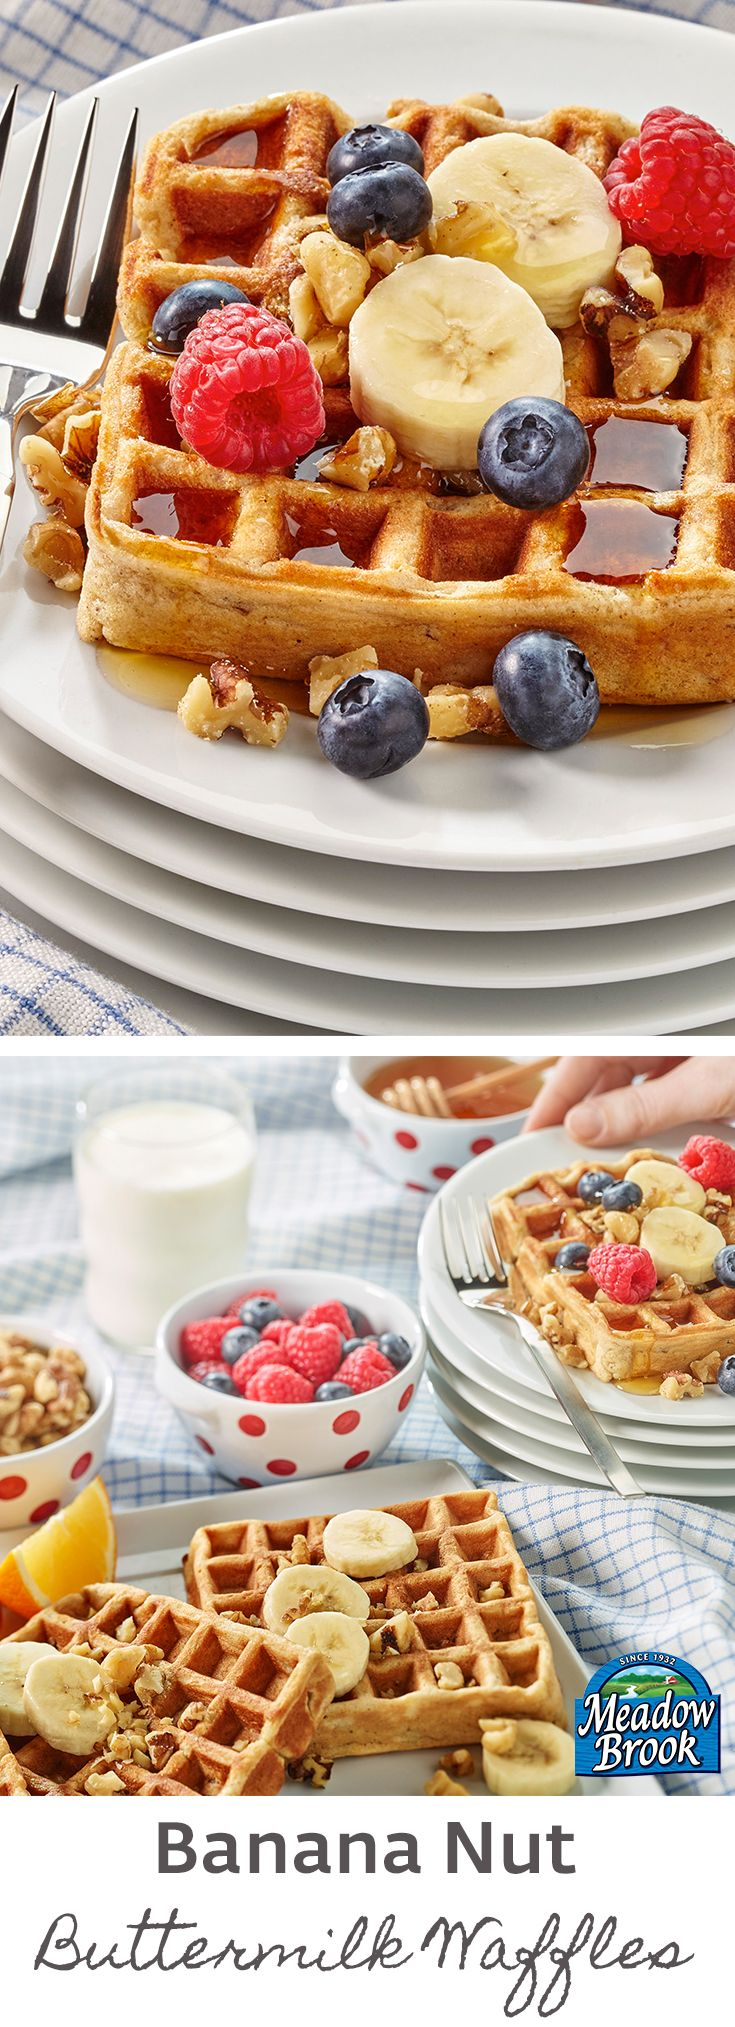 Make any morning extra special with these flavorful and delicious waffles.